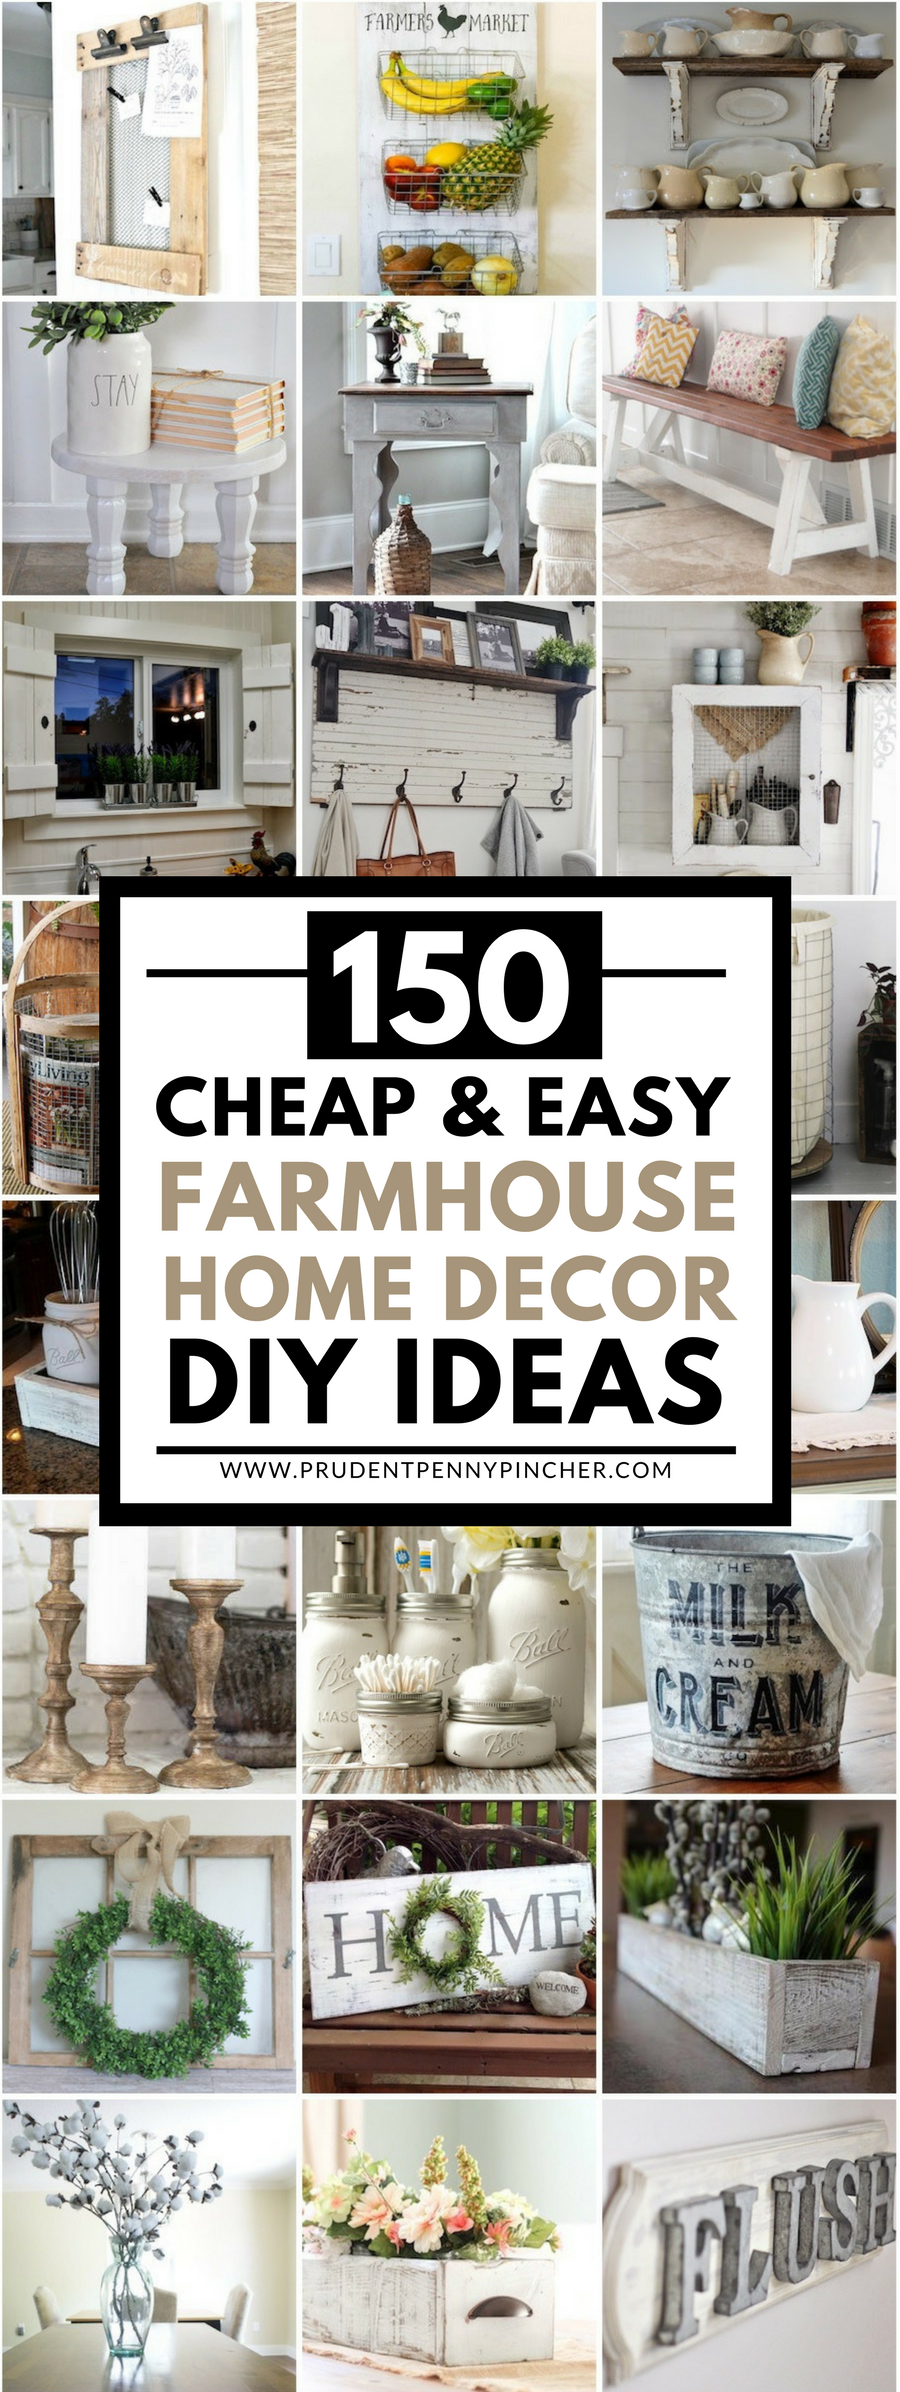 150 Cheap And Easy Diy Farmhouse Decor Ideas Farmhouse Style Diy Farmhouse Style House Farmhouse Decor